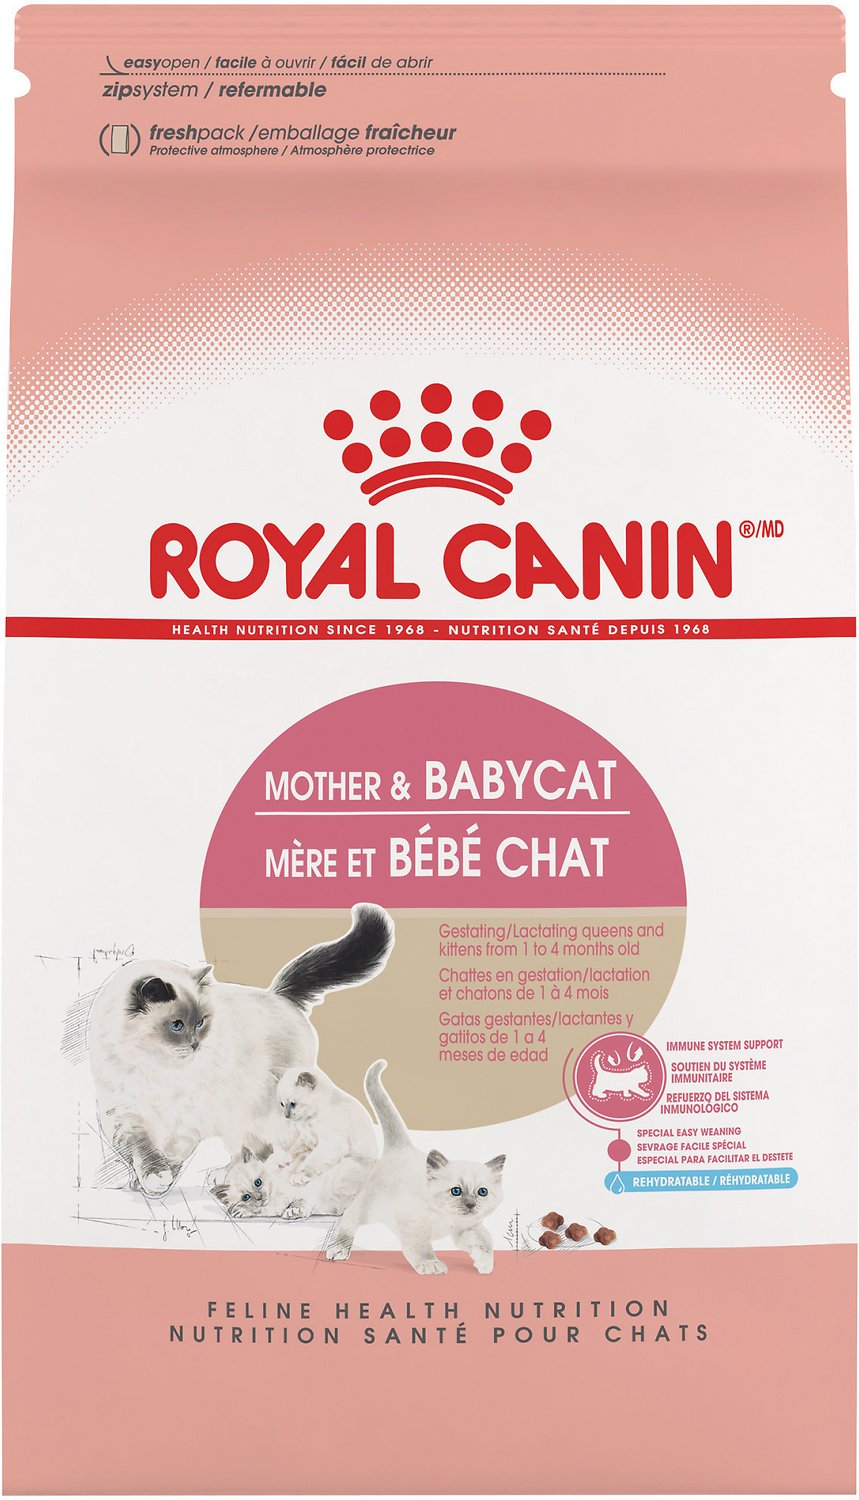 Royal Canin Mother Babycat Dry Cat Food For Newborn Kittens Pregnant Nursing Cats 7 Lb Bag Chewy Com